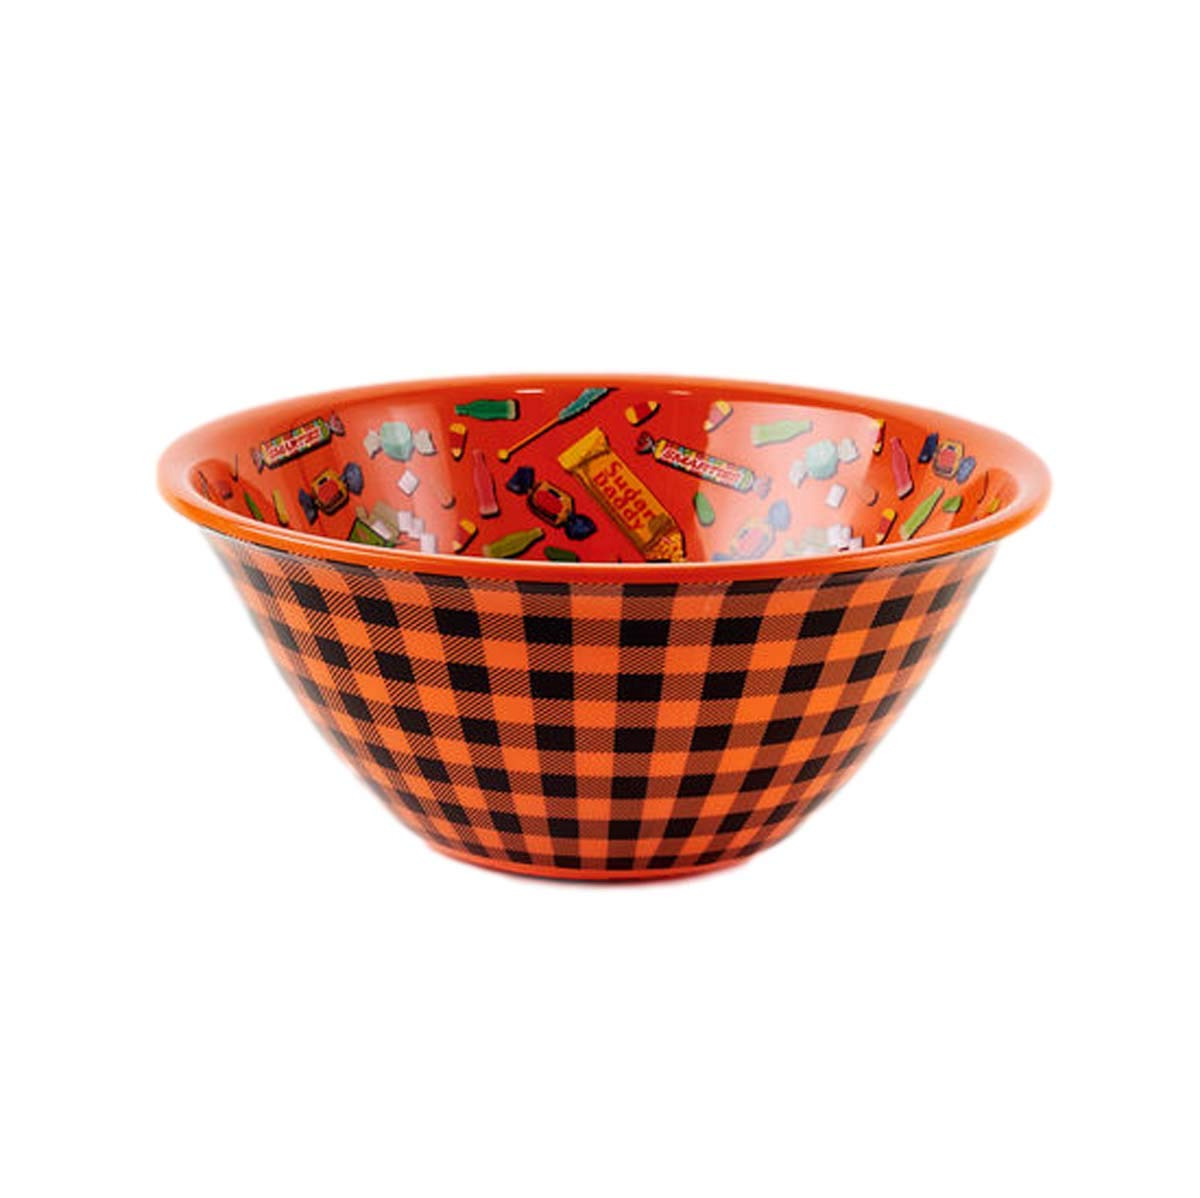 One Hundred 80 Degrees Orange and Black Plaid 14'' Candy Bowl